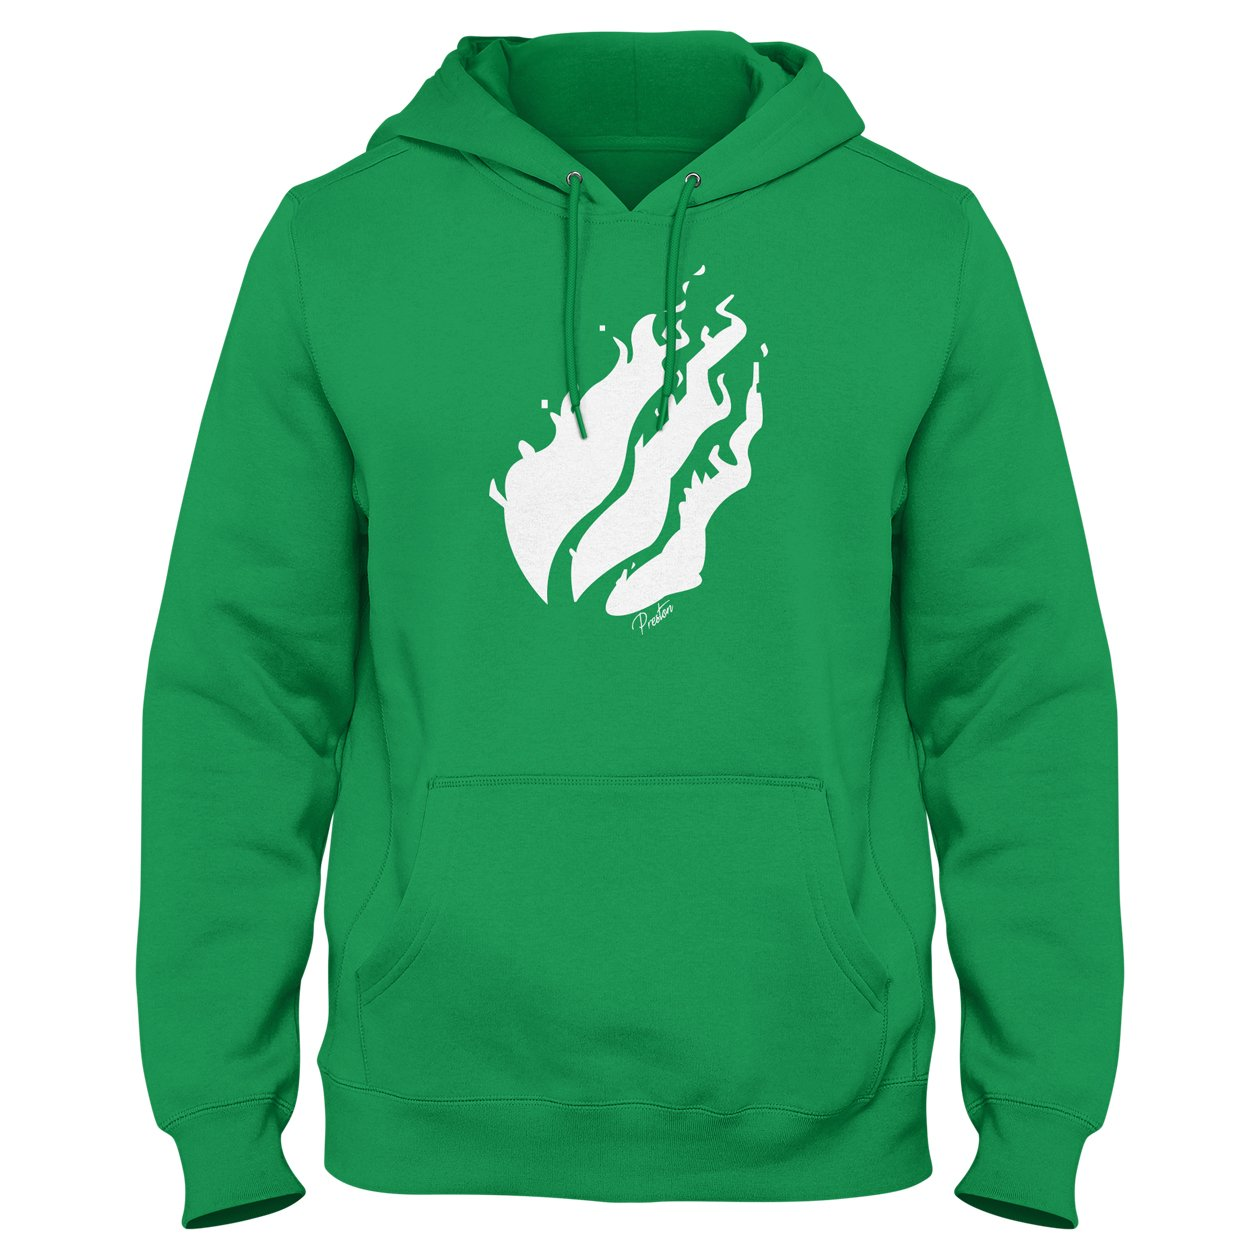 List Of Synonyms And Antonyms Of The Word: Prestonplayz Hoodie